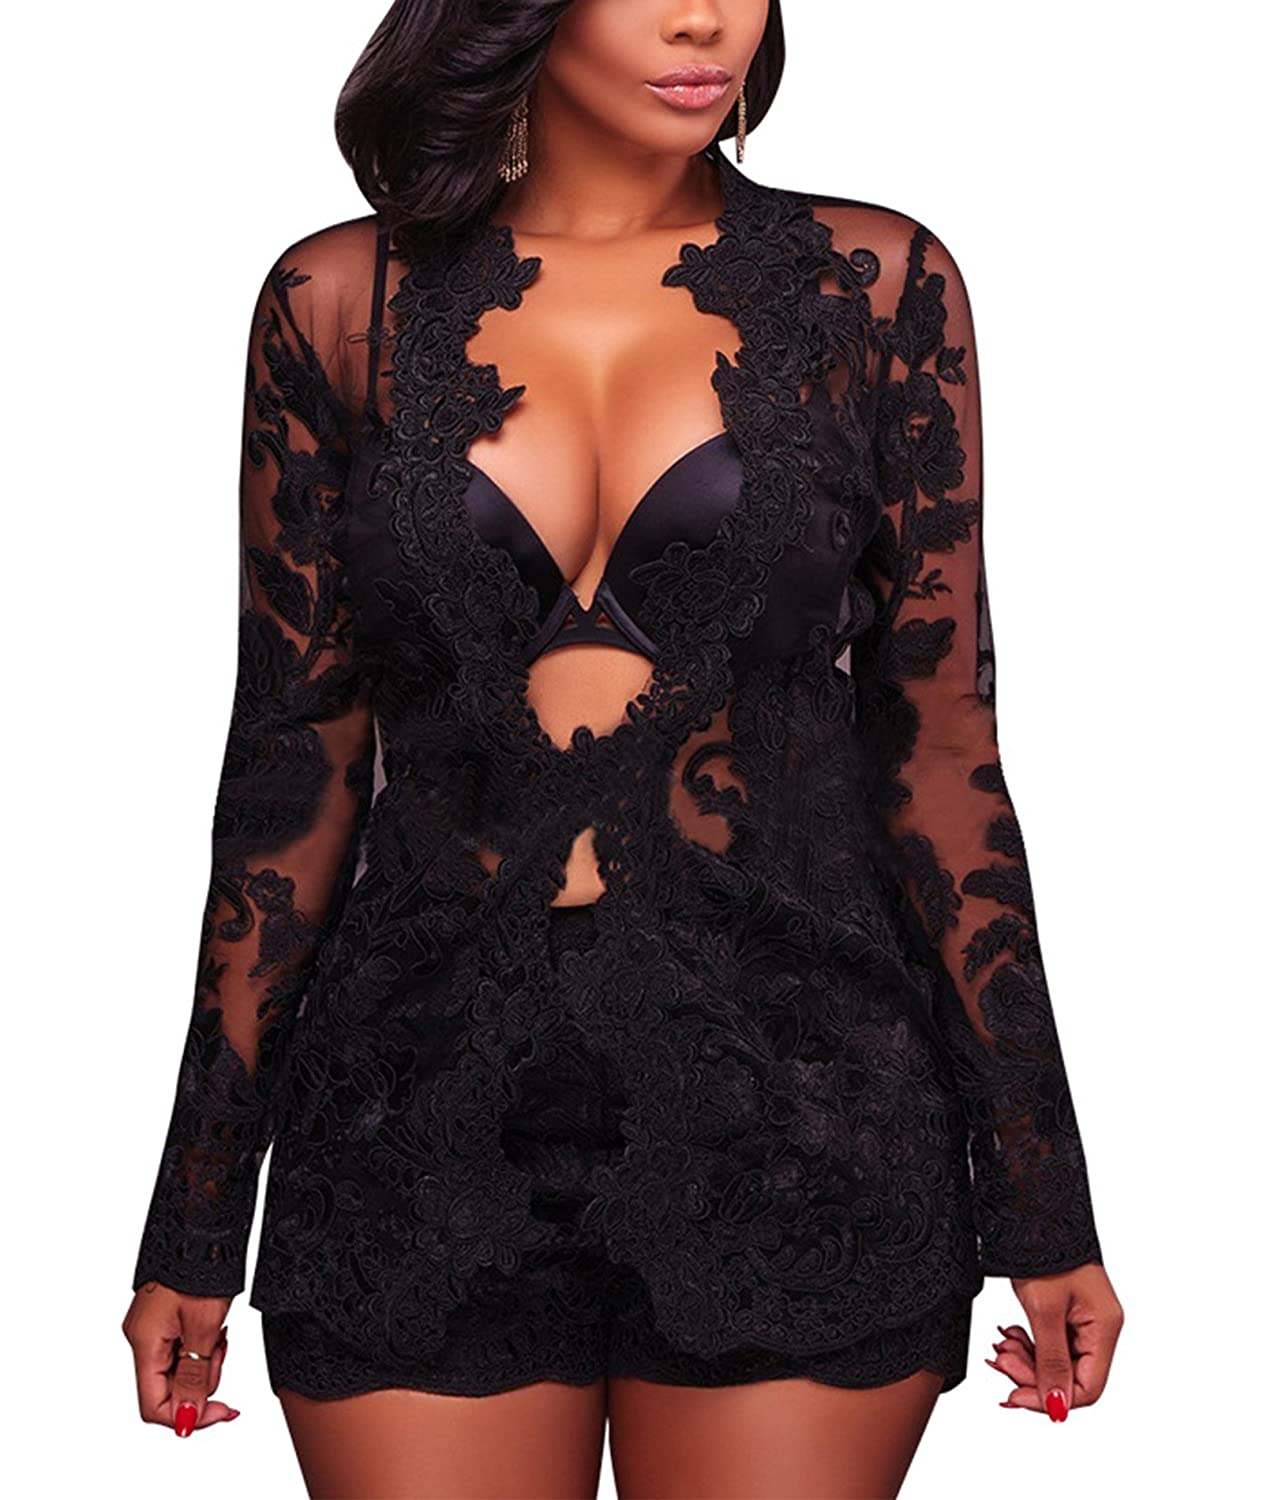 b171b5186c60 Top 10 wholesale Black Lace Long Sleeve Romper - Chinabrands.com